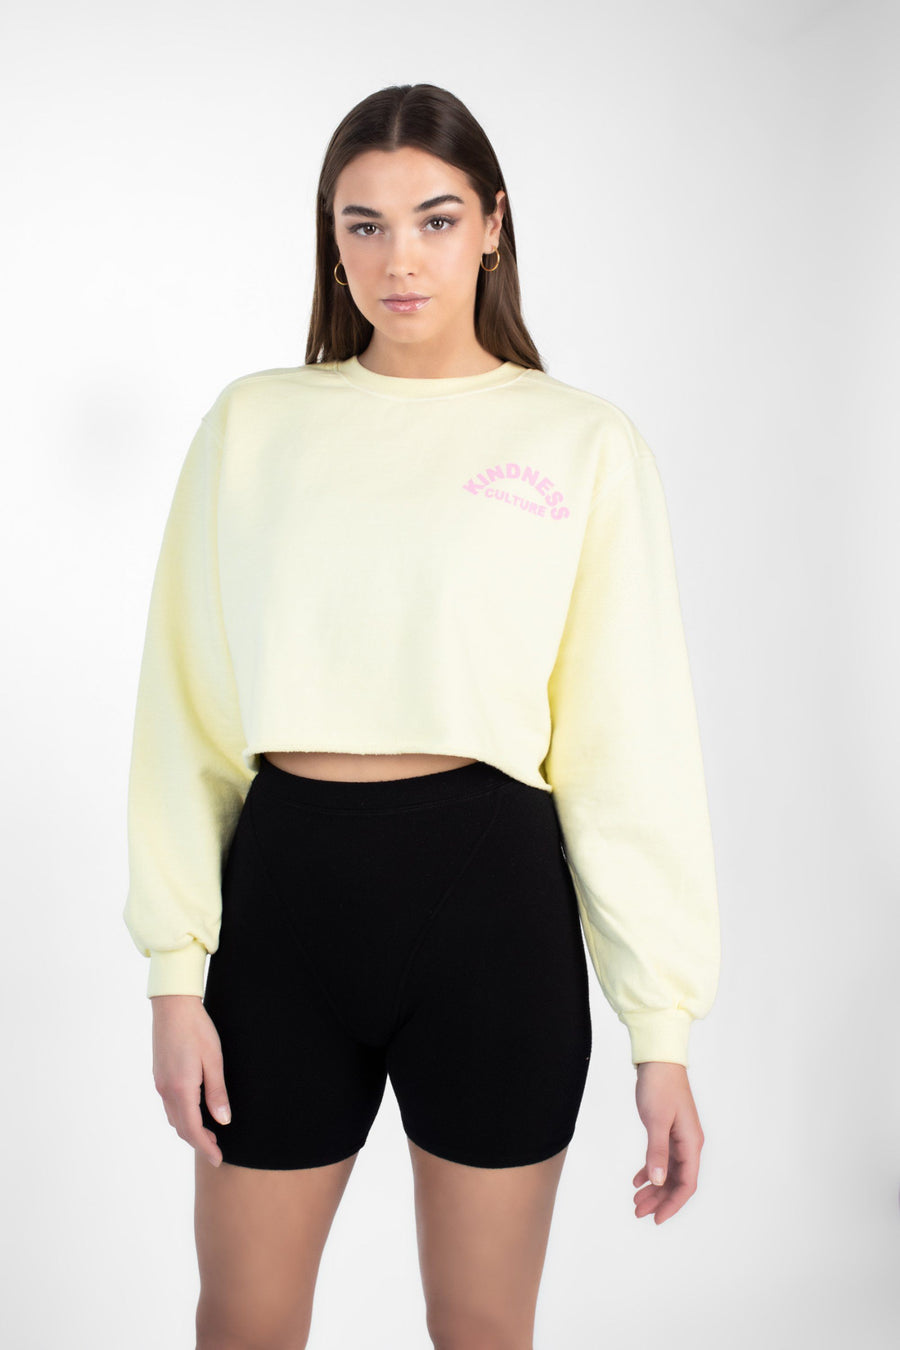 Cropped Crew  Sweatshirt - Kindness Culture